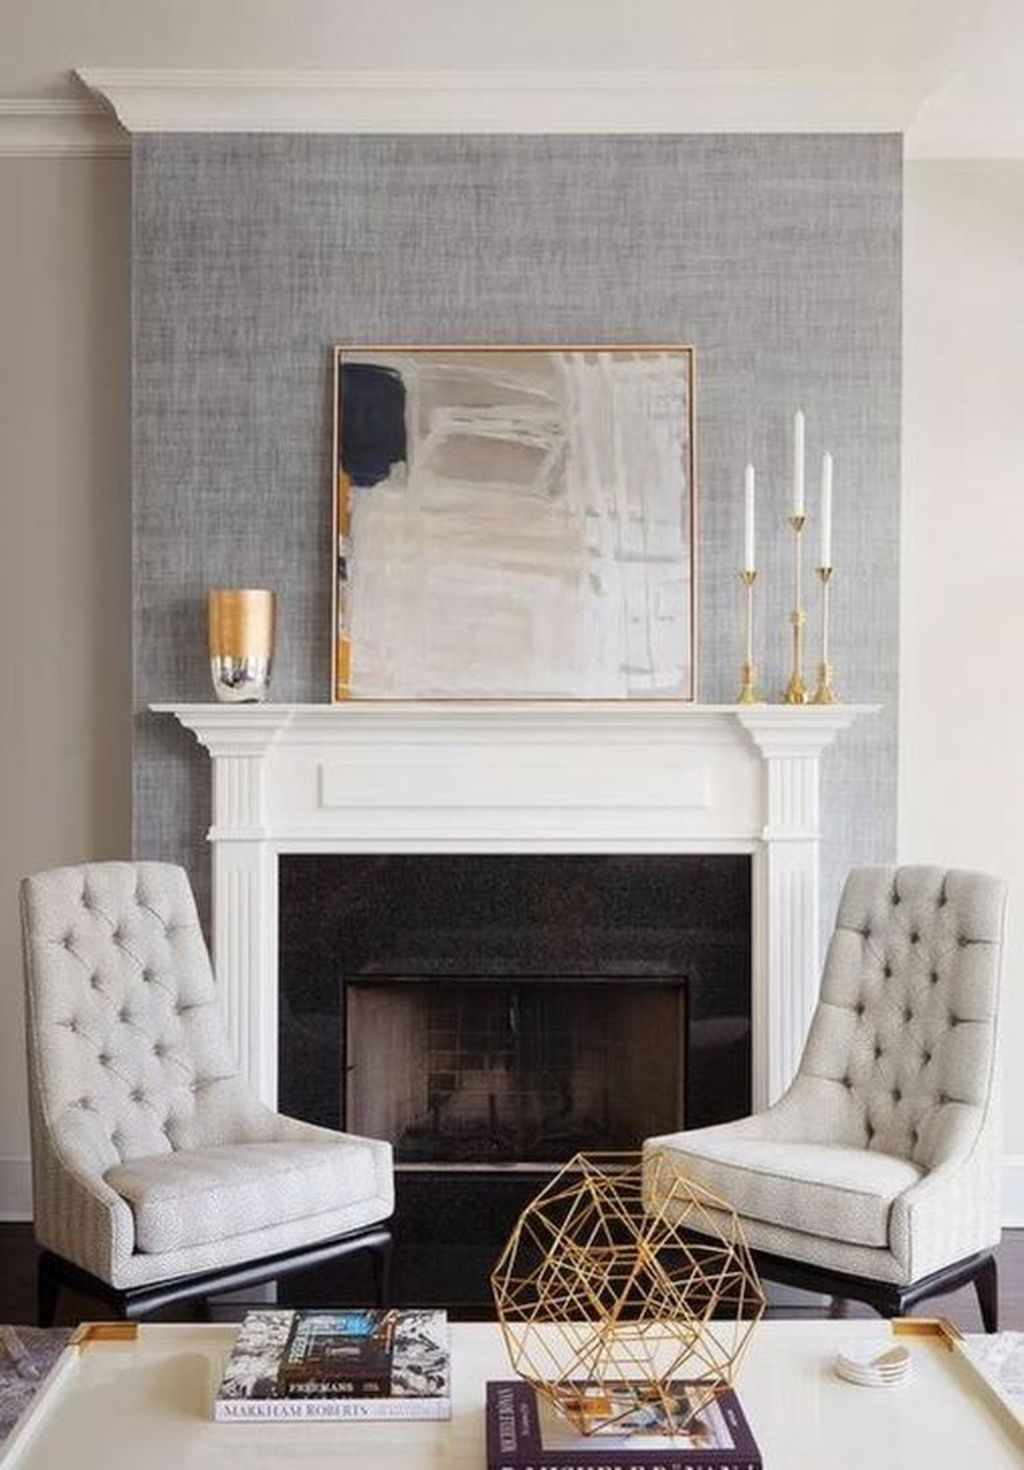 20 The Best Corner Fireplace Ideas For Your Living Room Accent Walls In Living Room Wallpaper Living Room Comfy Living Room